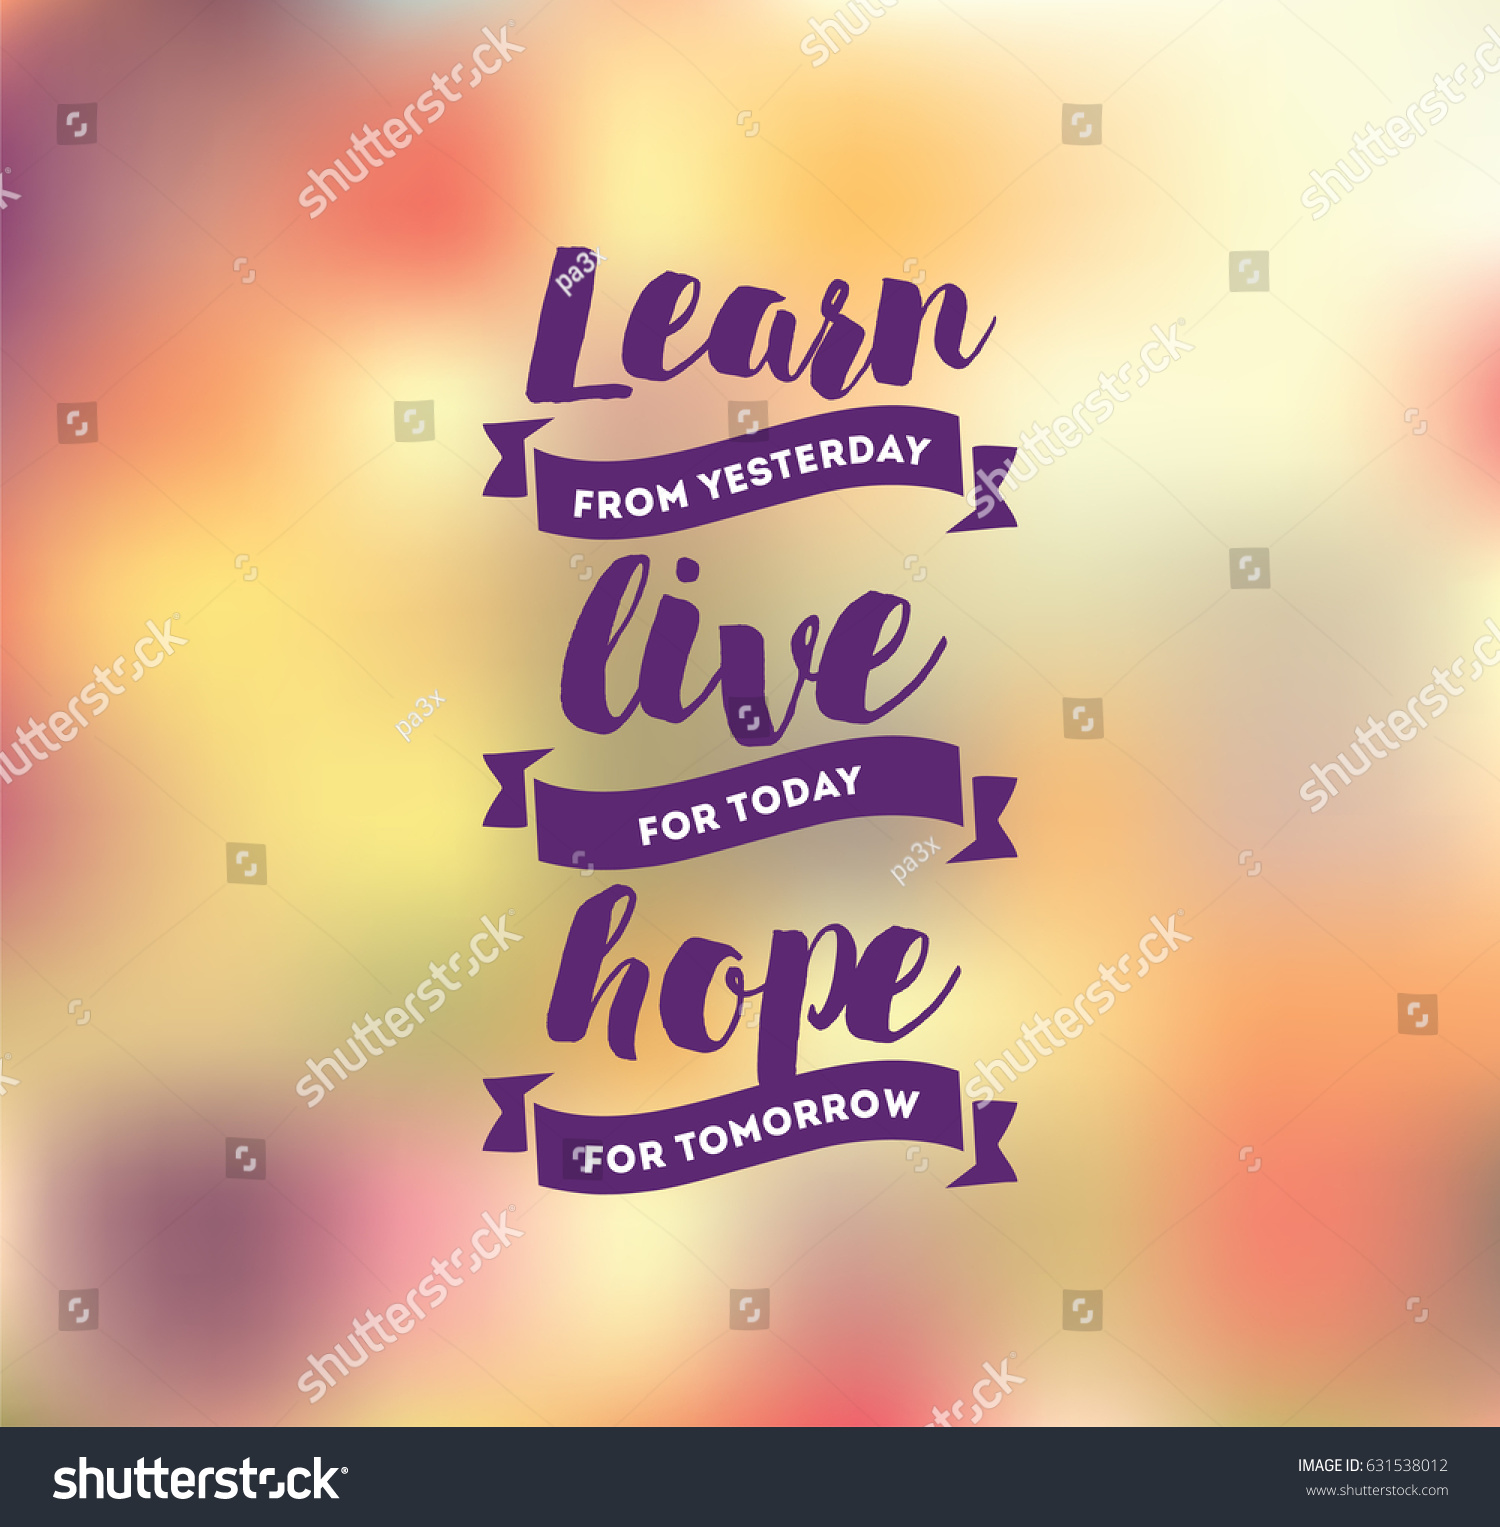 Live For Today Quotes Learn Yesterday Live Today Hope Tomorrow Stock Vector 631538012